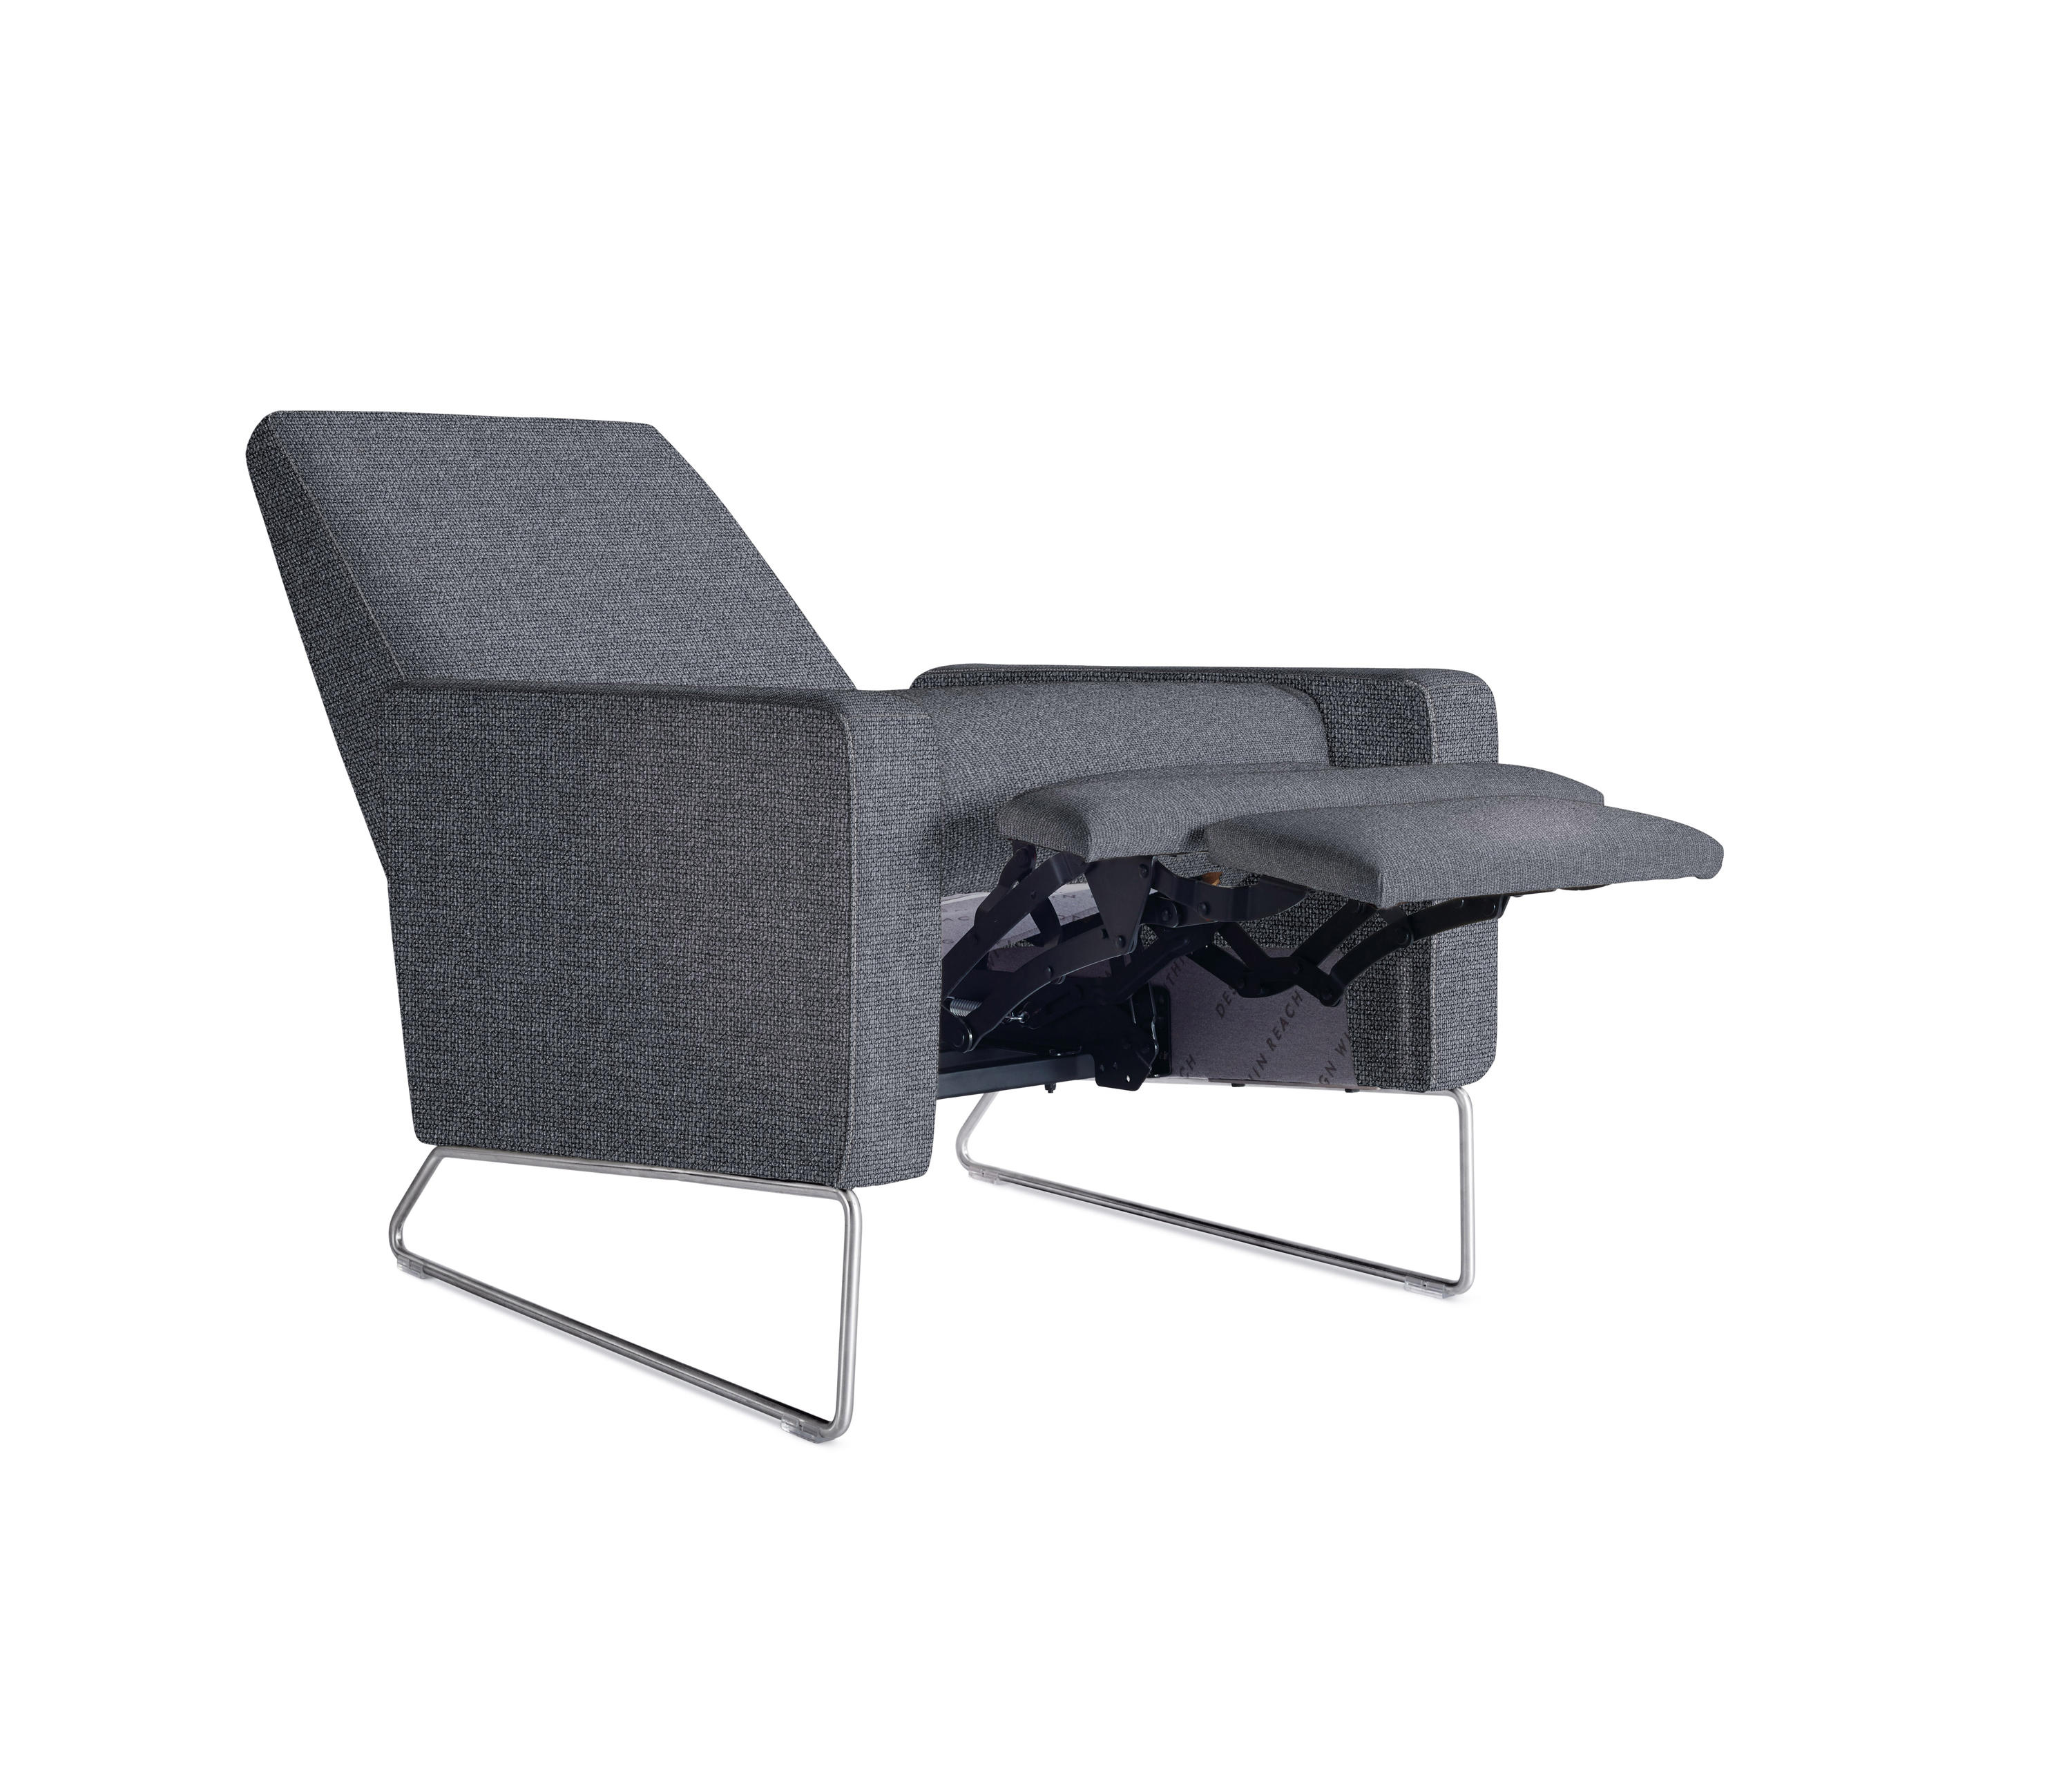 ... Flight Recliner In Fabric By Design Within Reach | Recliners ...